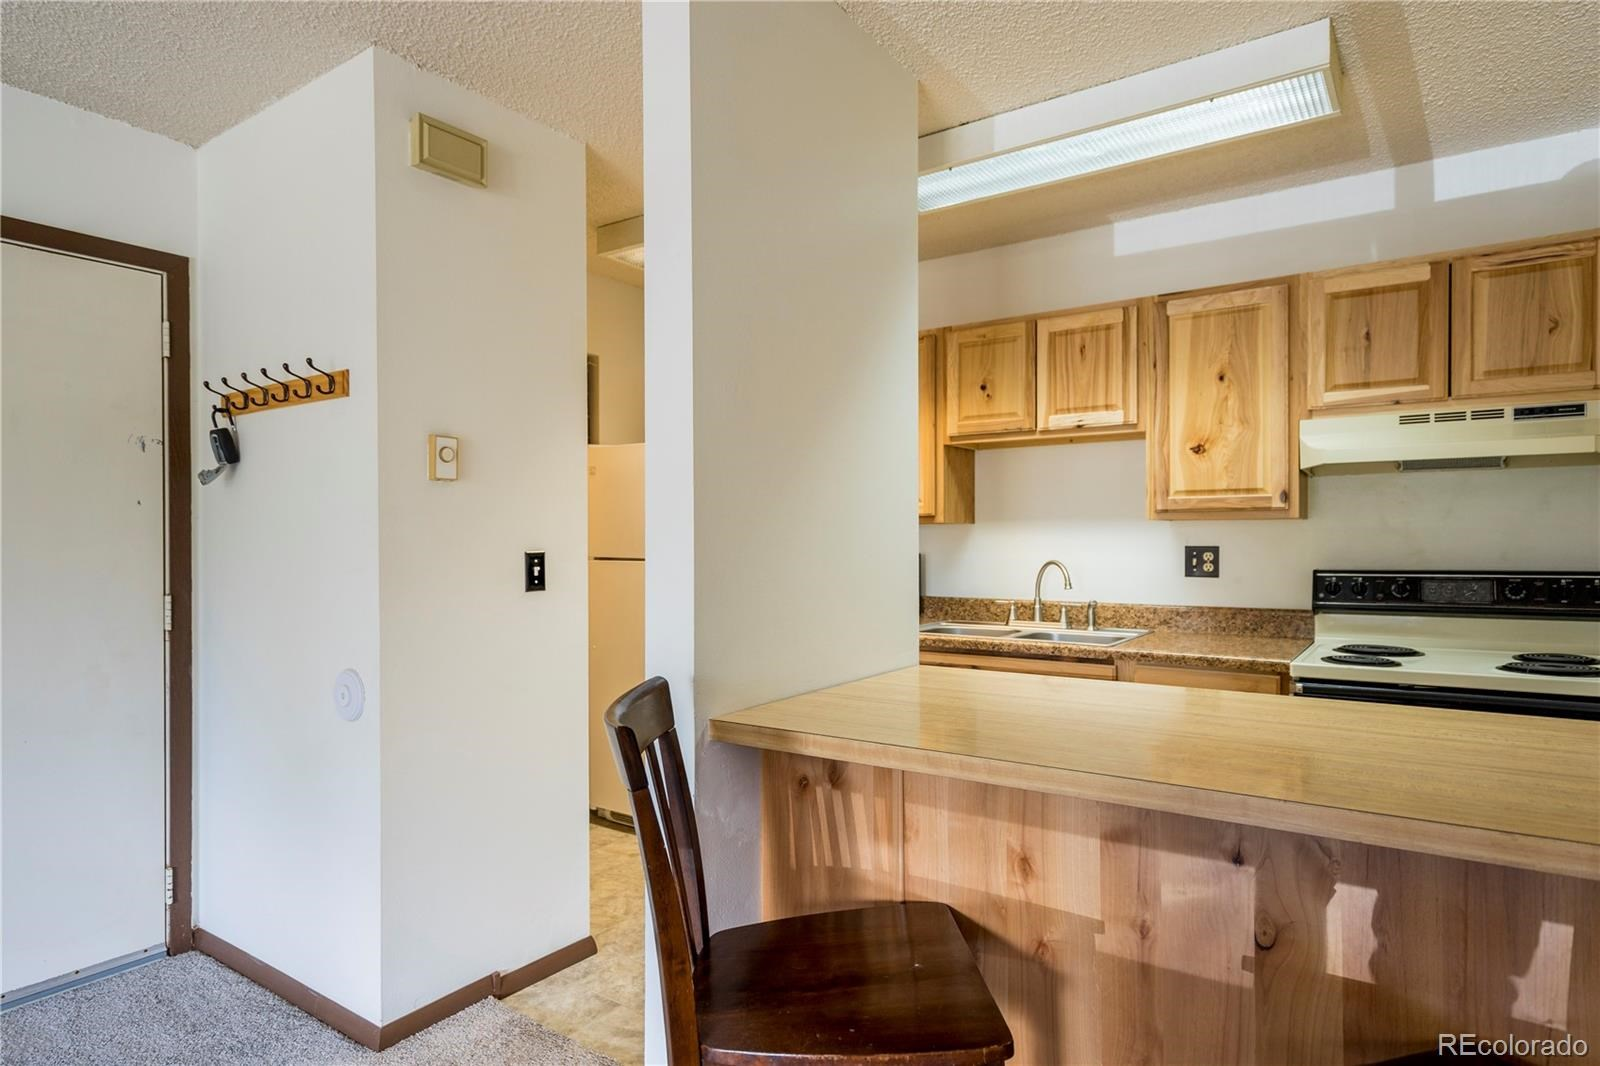 MLS# 5203269 - 6 - 1320 Athens Plaza #4, Steamboat Springs, CO 80487